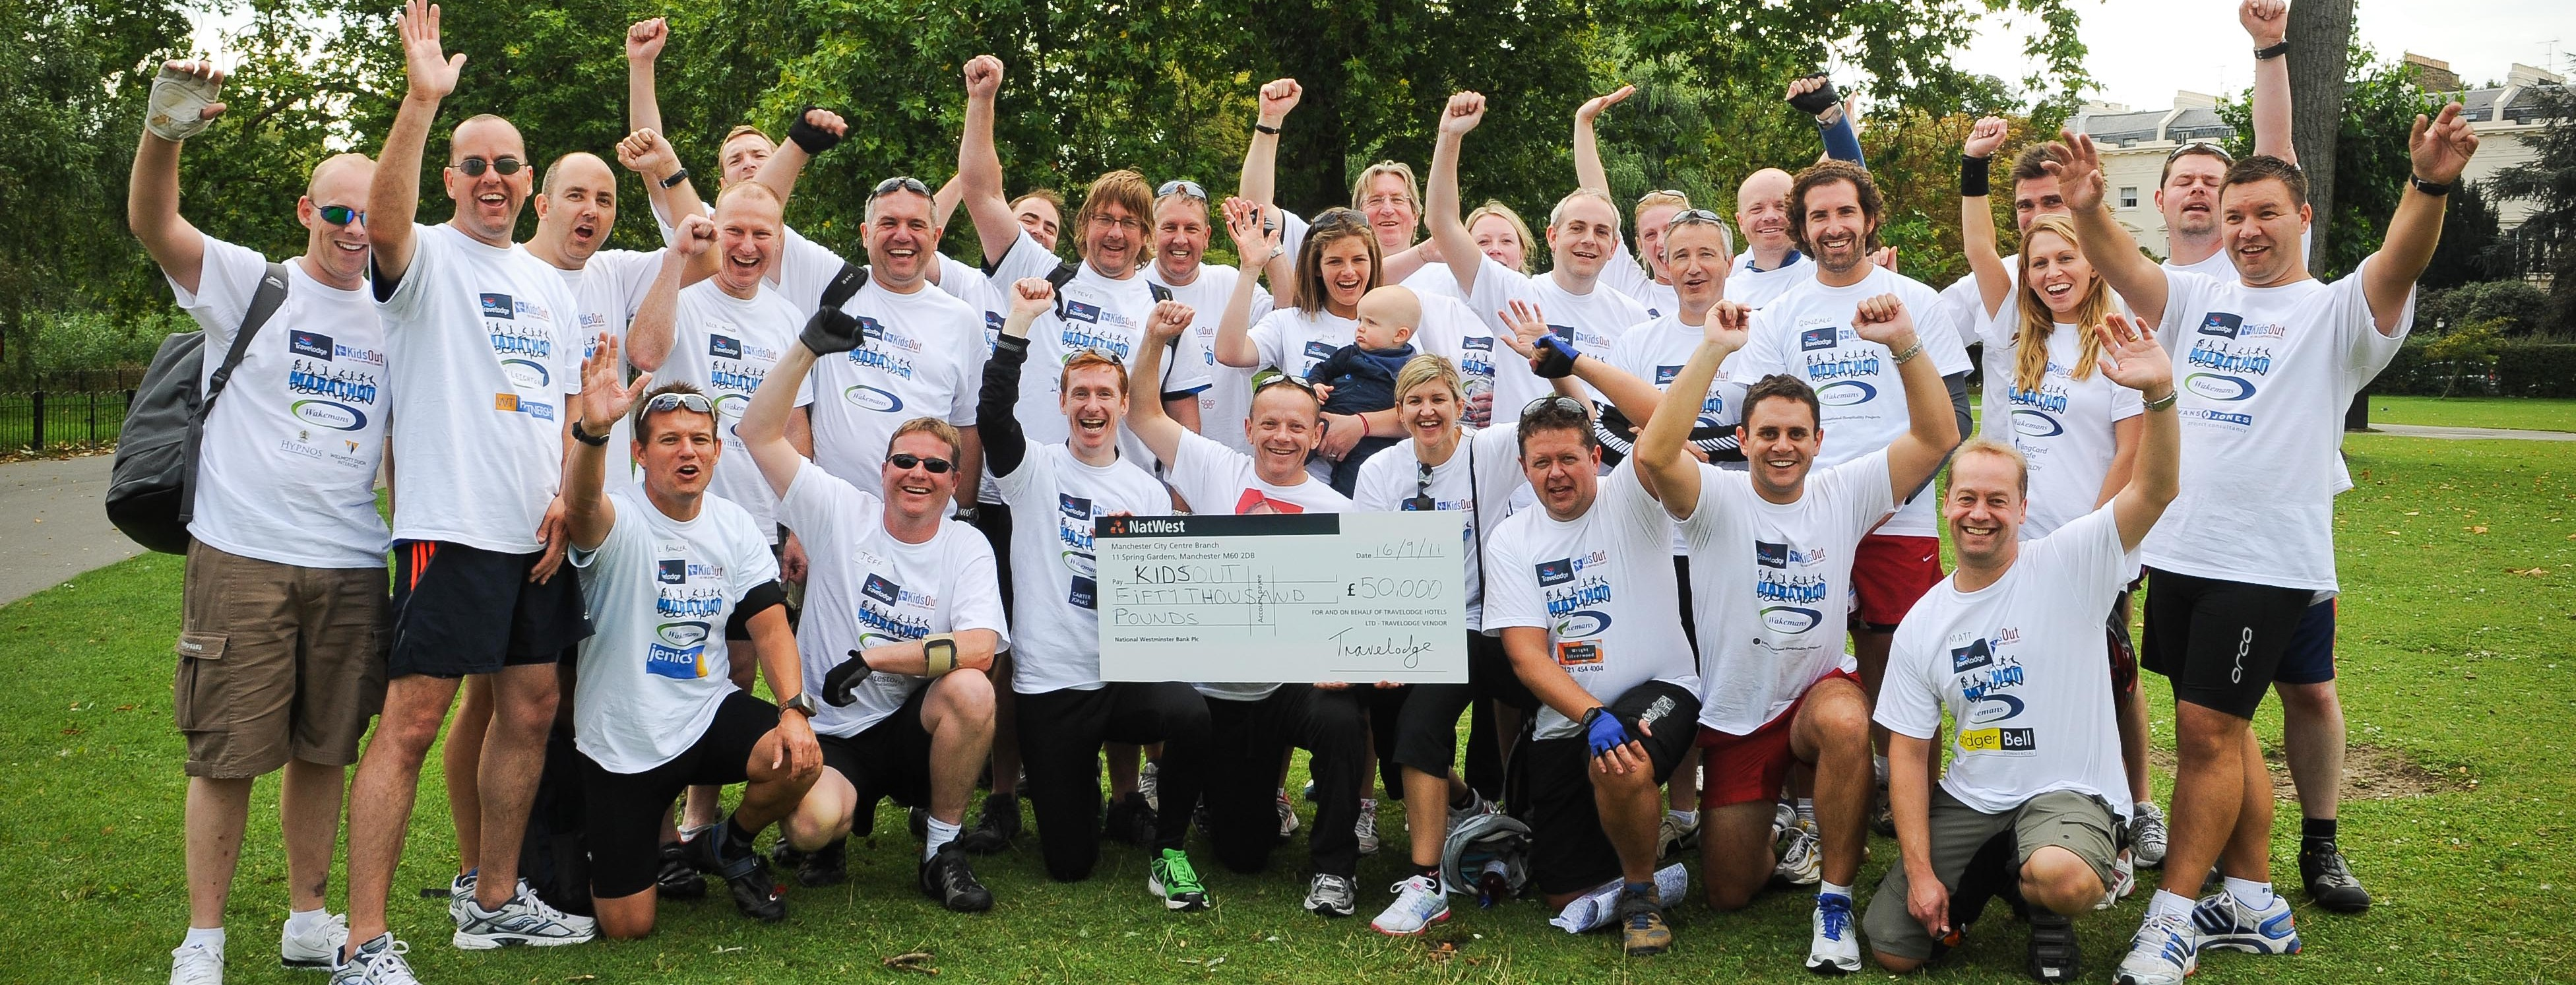 Travelodge's charity Marathon-Decathlon for 'KidsOut', the fun and happiness charity helping disadvantaged children in the UK.  The fundraising event has raised £50,000 for the charity.